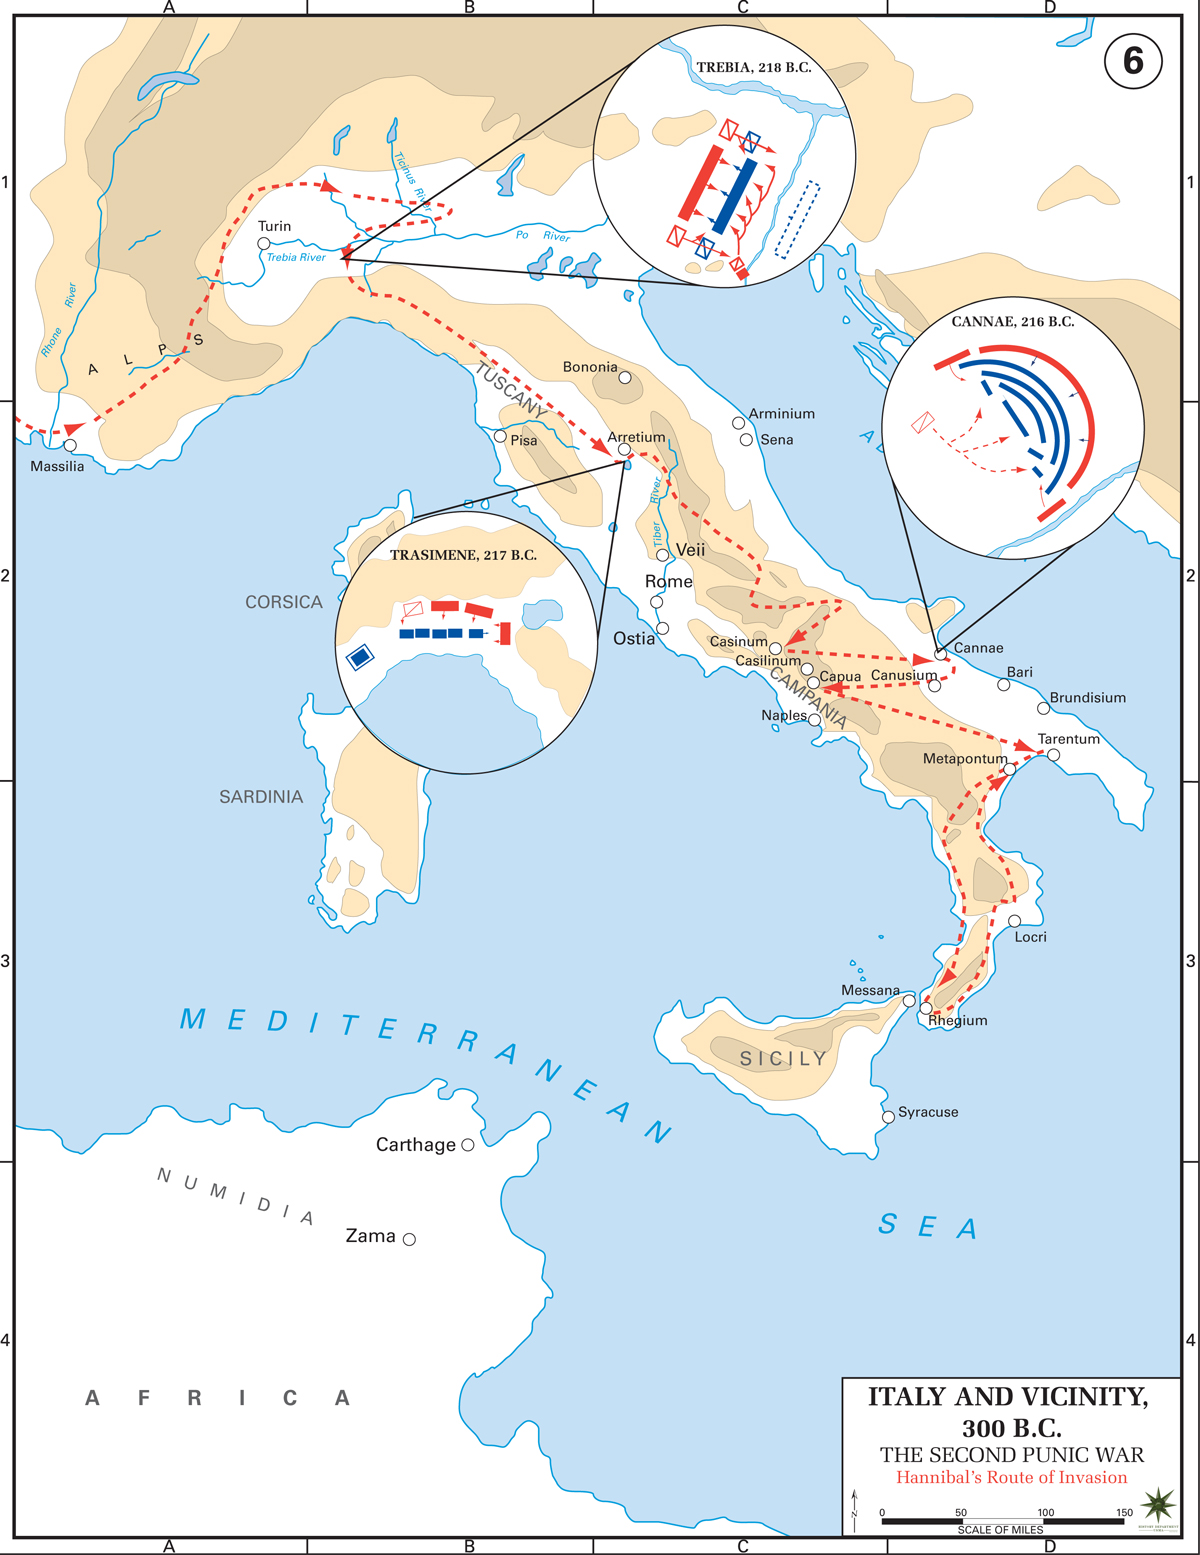 2nd punic war second hannbal italy map .jpg